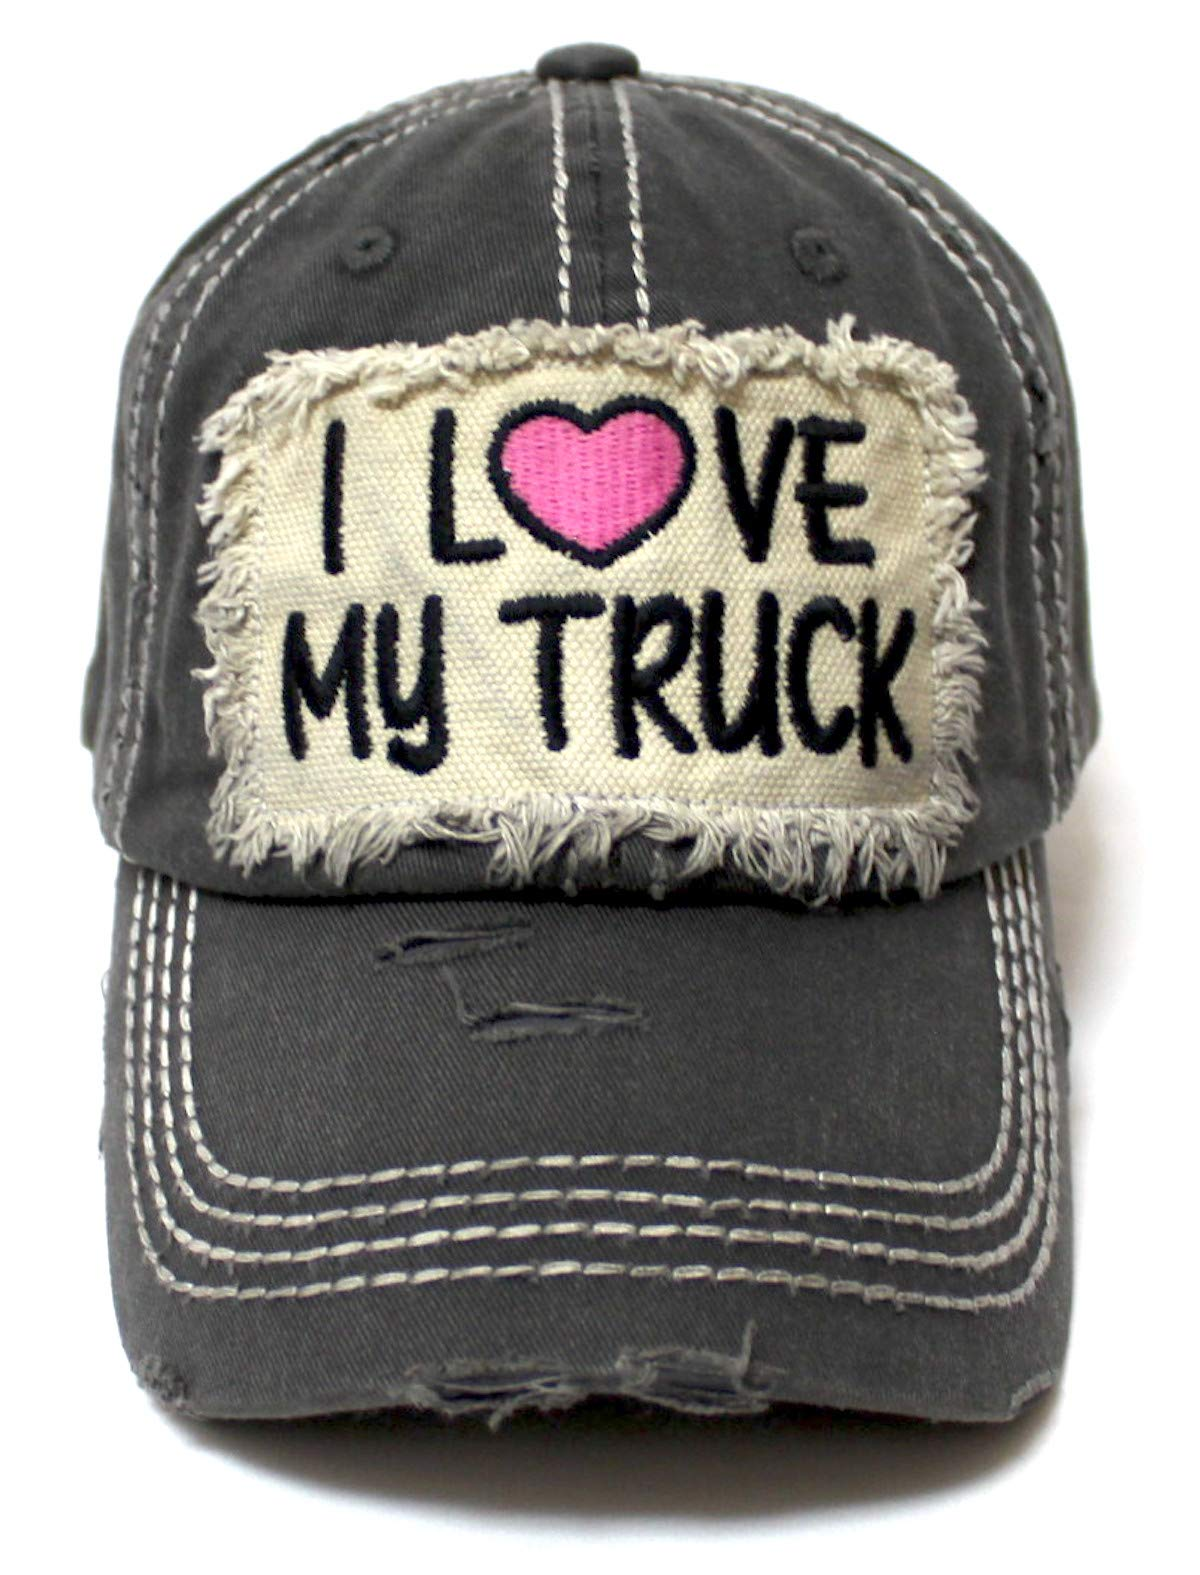 Women's Distressed Hat I Love My Truck Patch Embroidery Adjustable Cap, California Vintage Graphite - Caps 'N Vintage